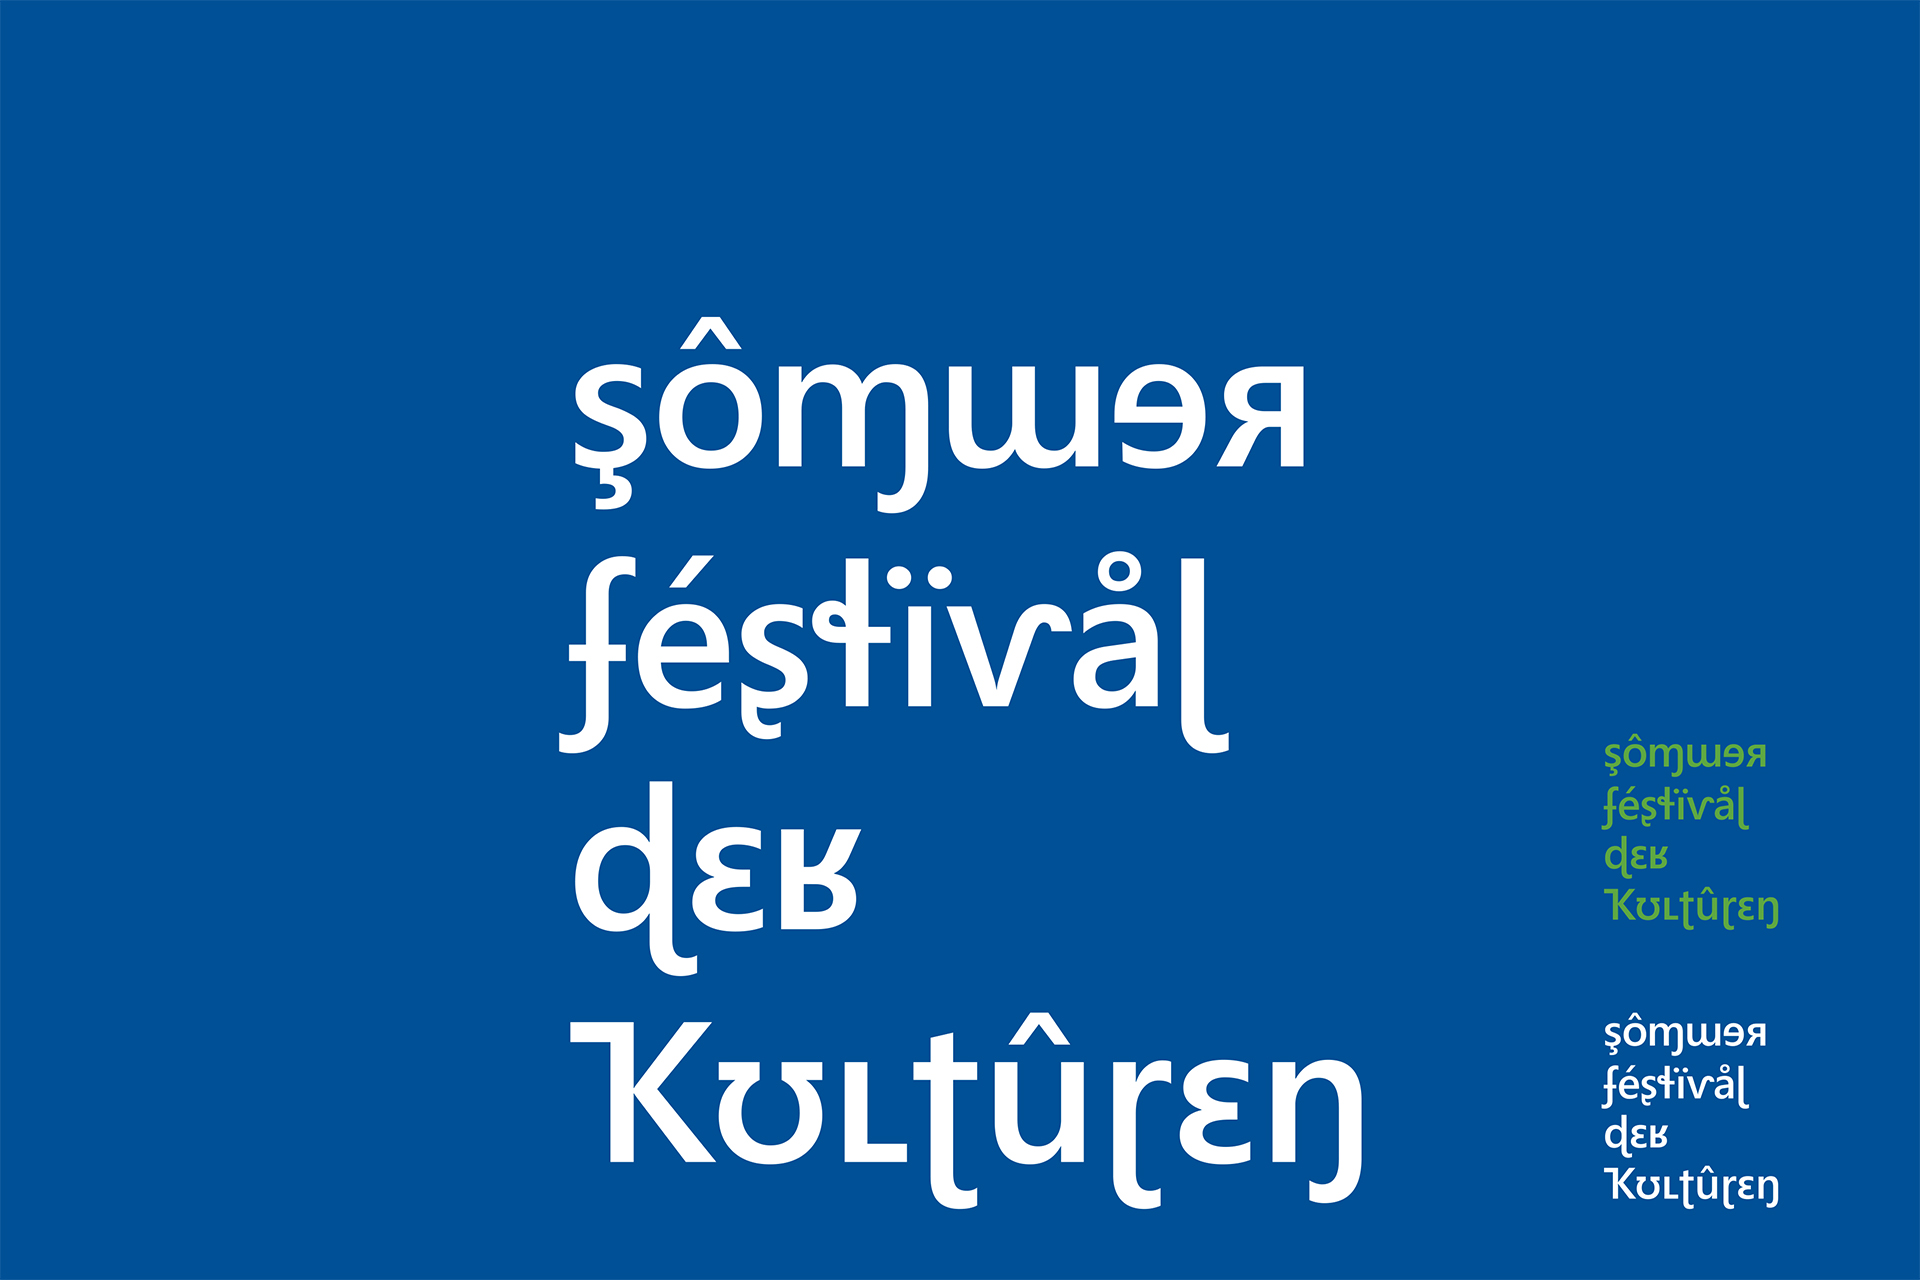 Bettina_Konrath_Sommerfestival001